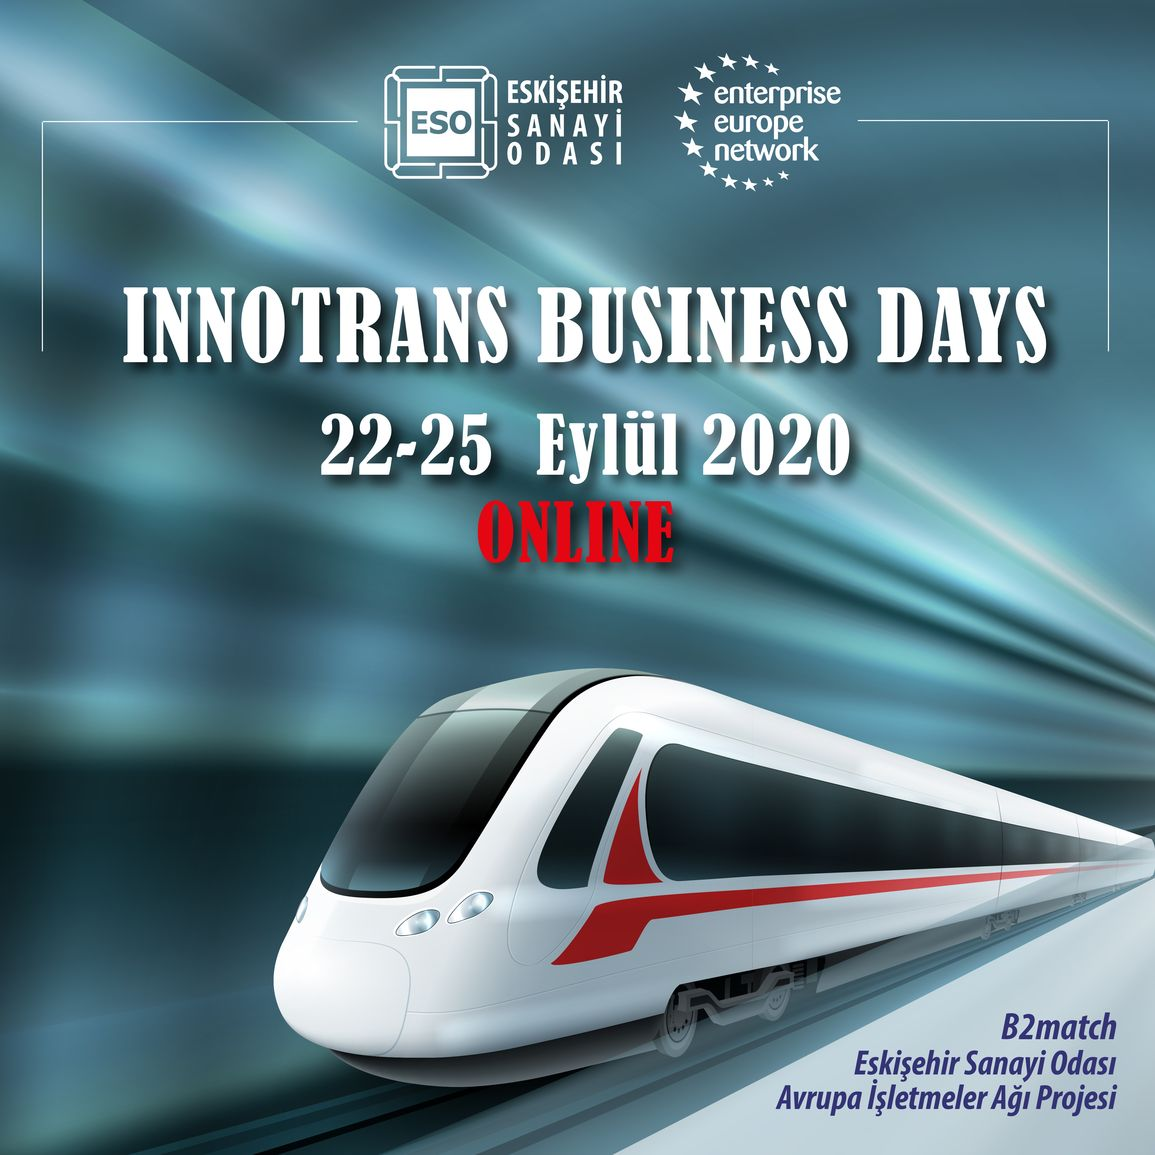 INNOTRANS BUSİNESS DAYS